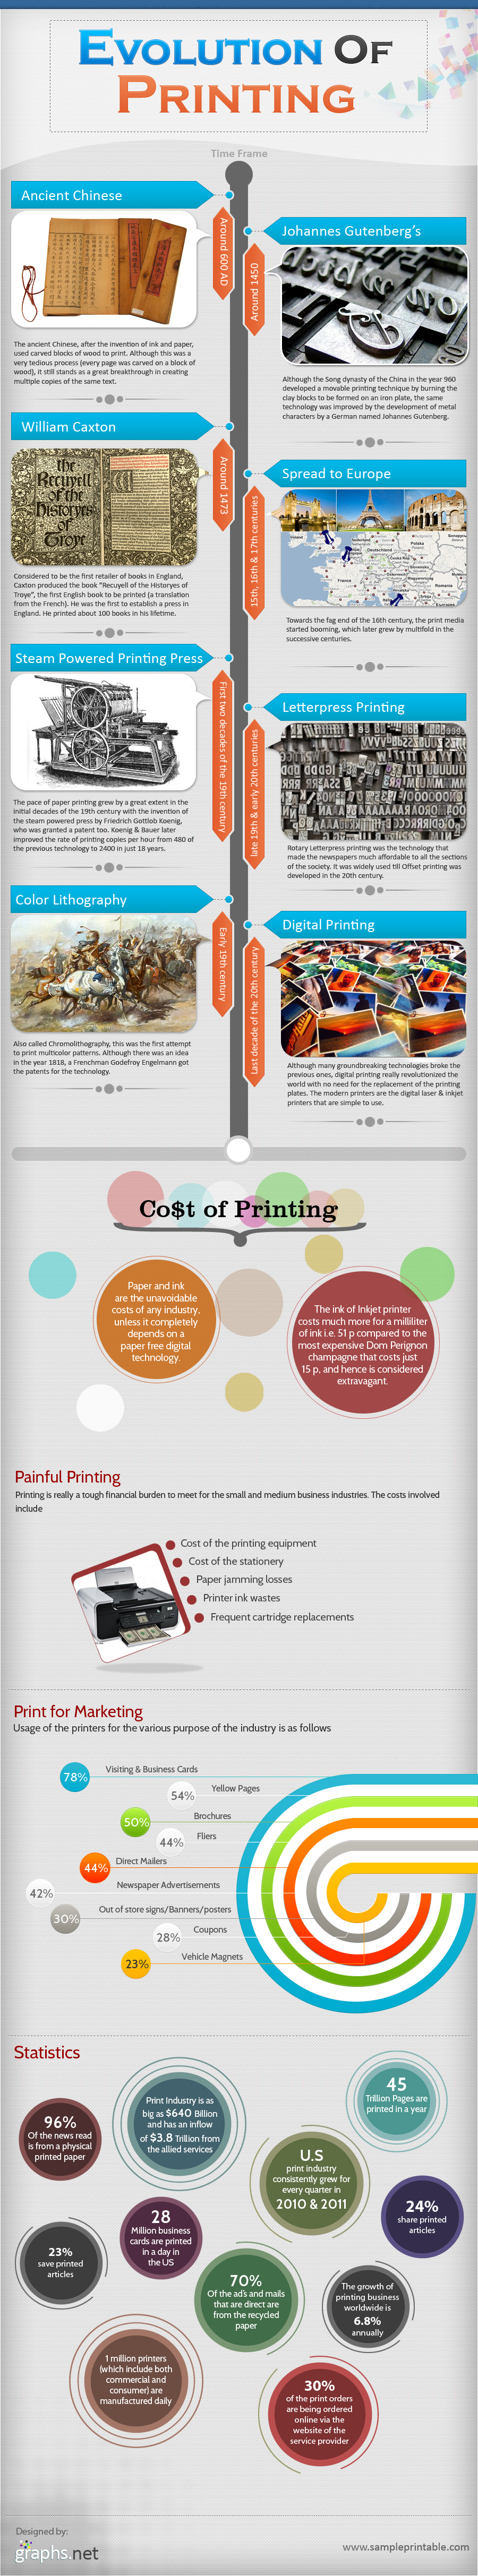 How printed evolved